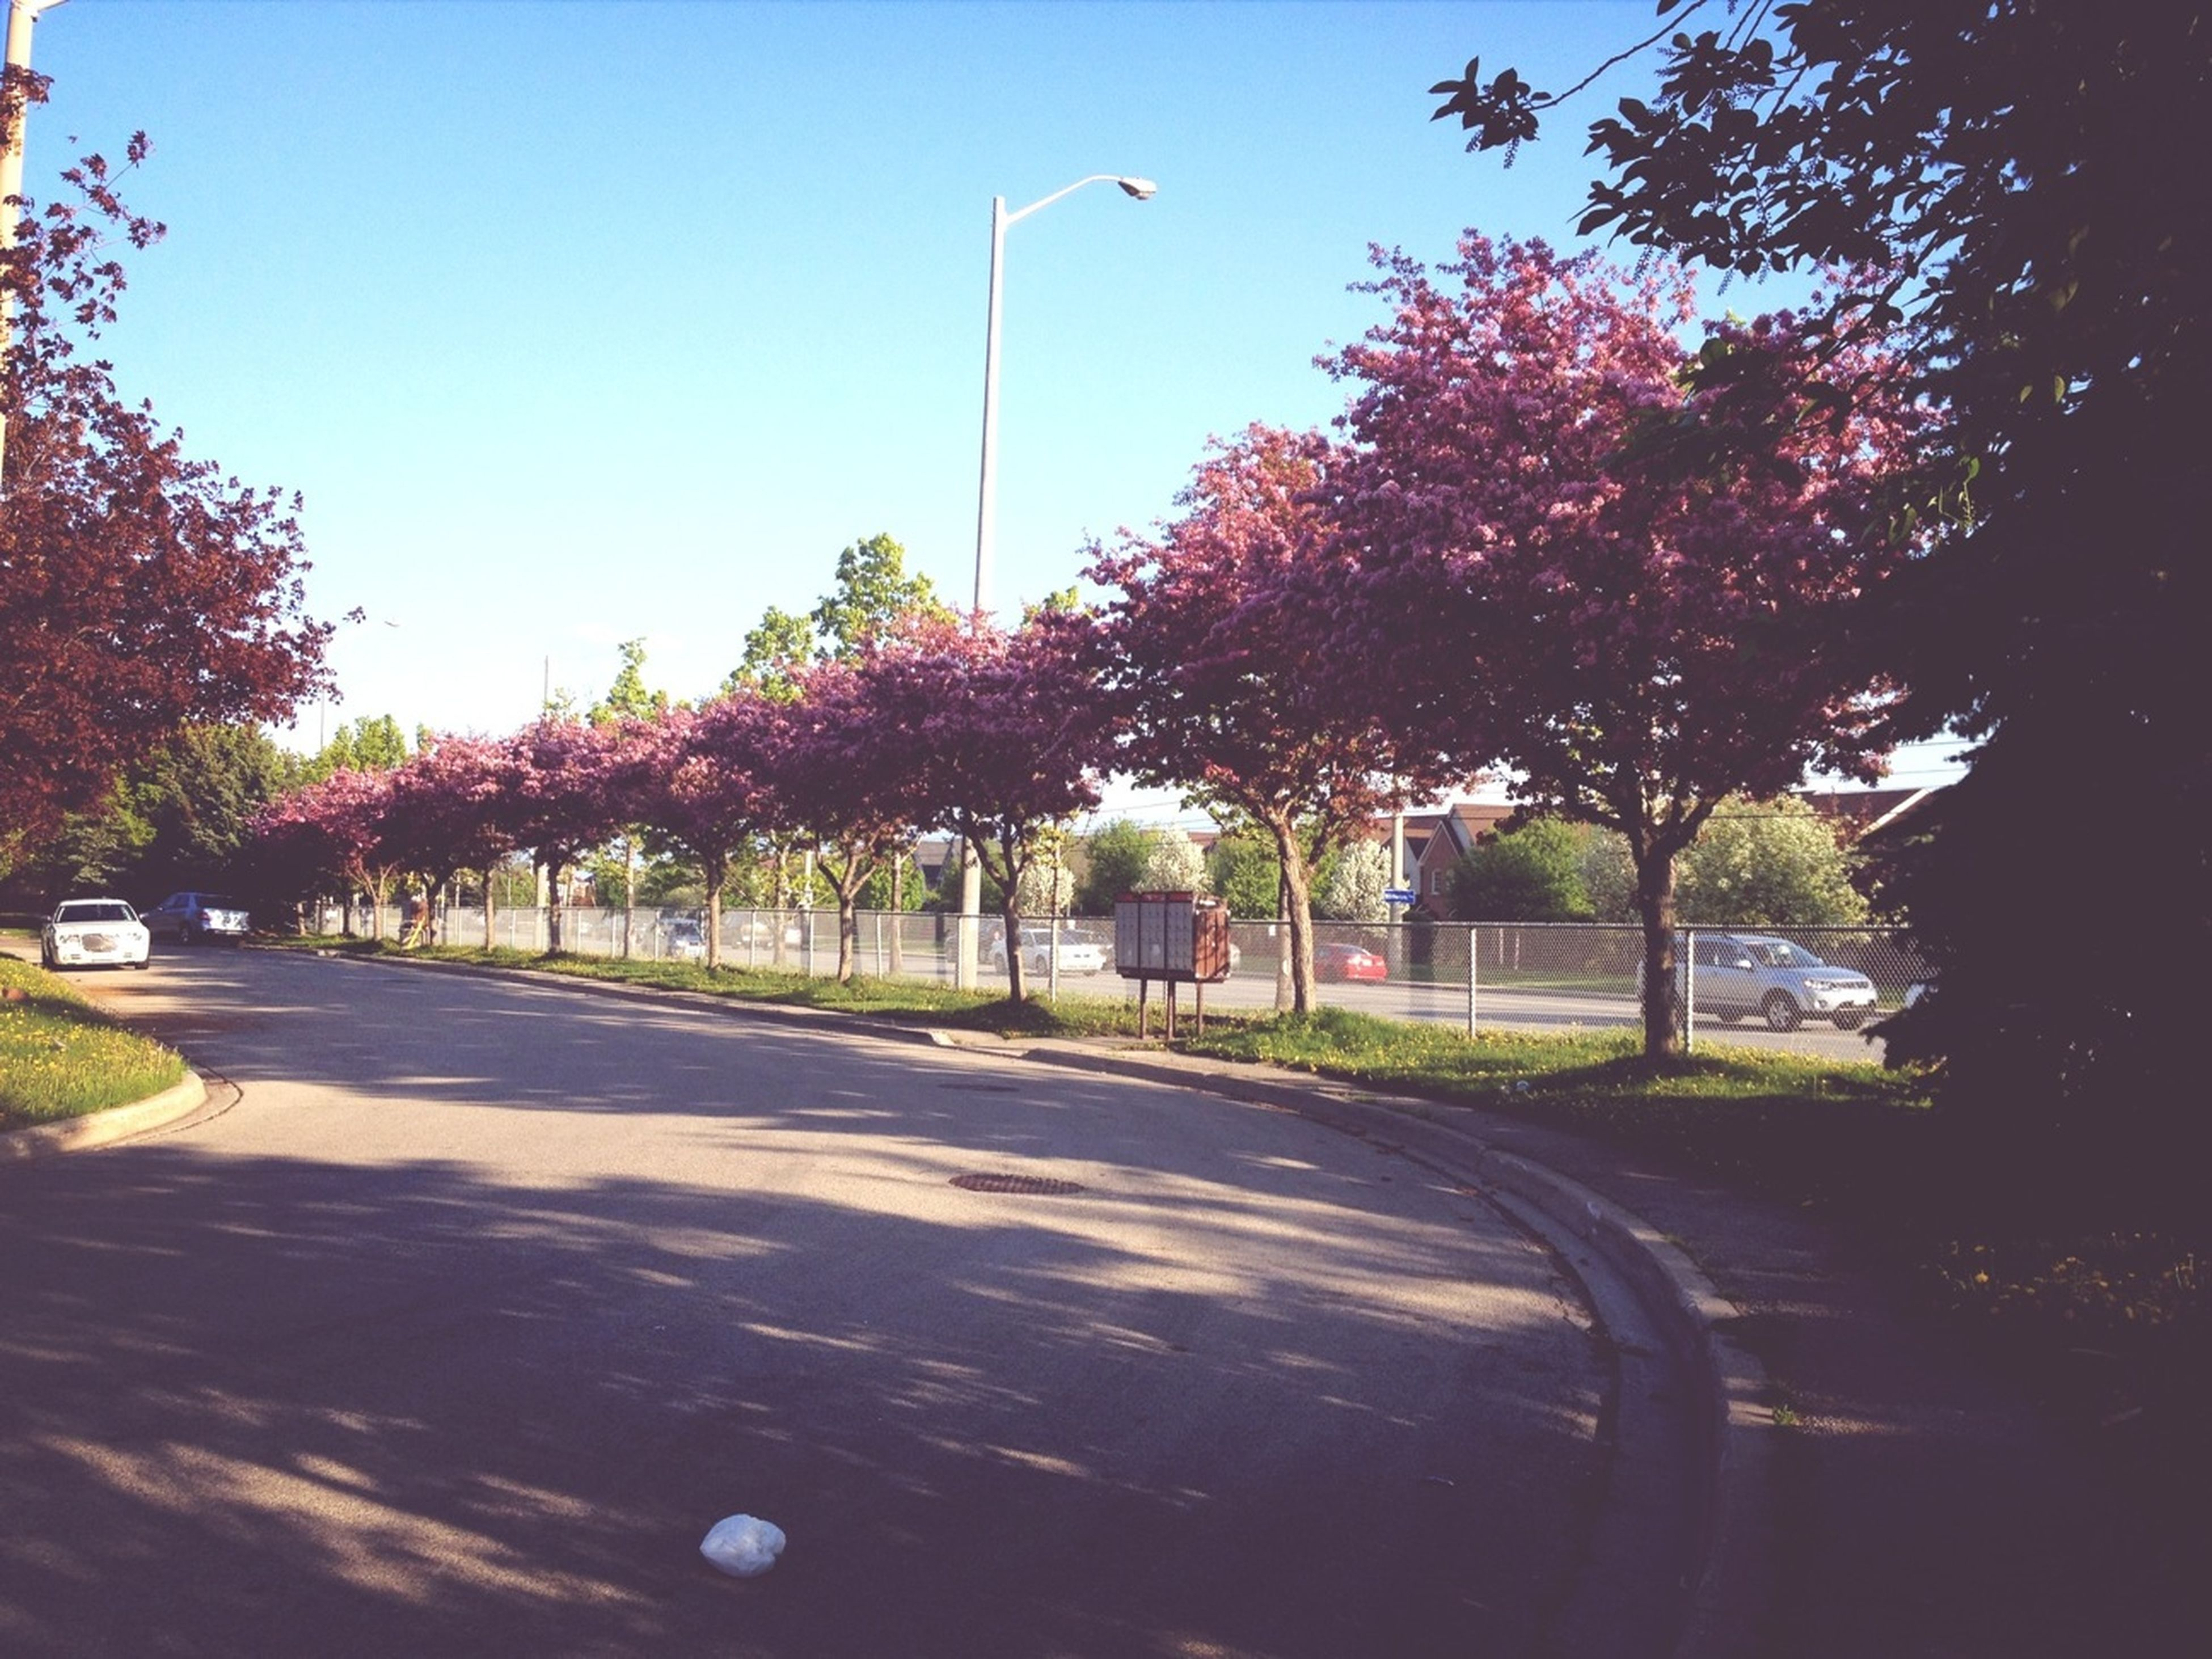 tree, road, transportation, the way forward, road marking, street, clear sky, sky, car, street light, empty, asphalt, diminishing perspective, land vehicle, sunlight, growth, mode of transport, blue, outdoors, country road